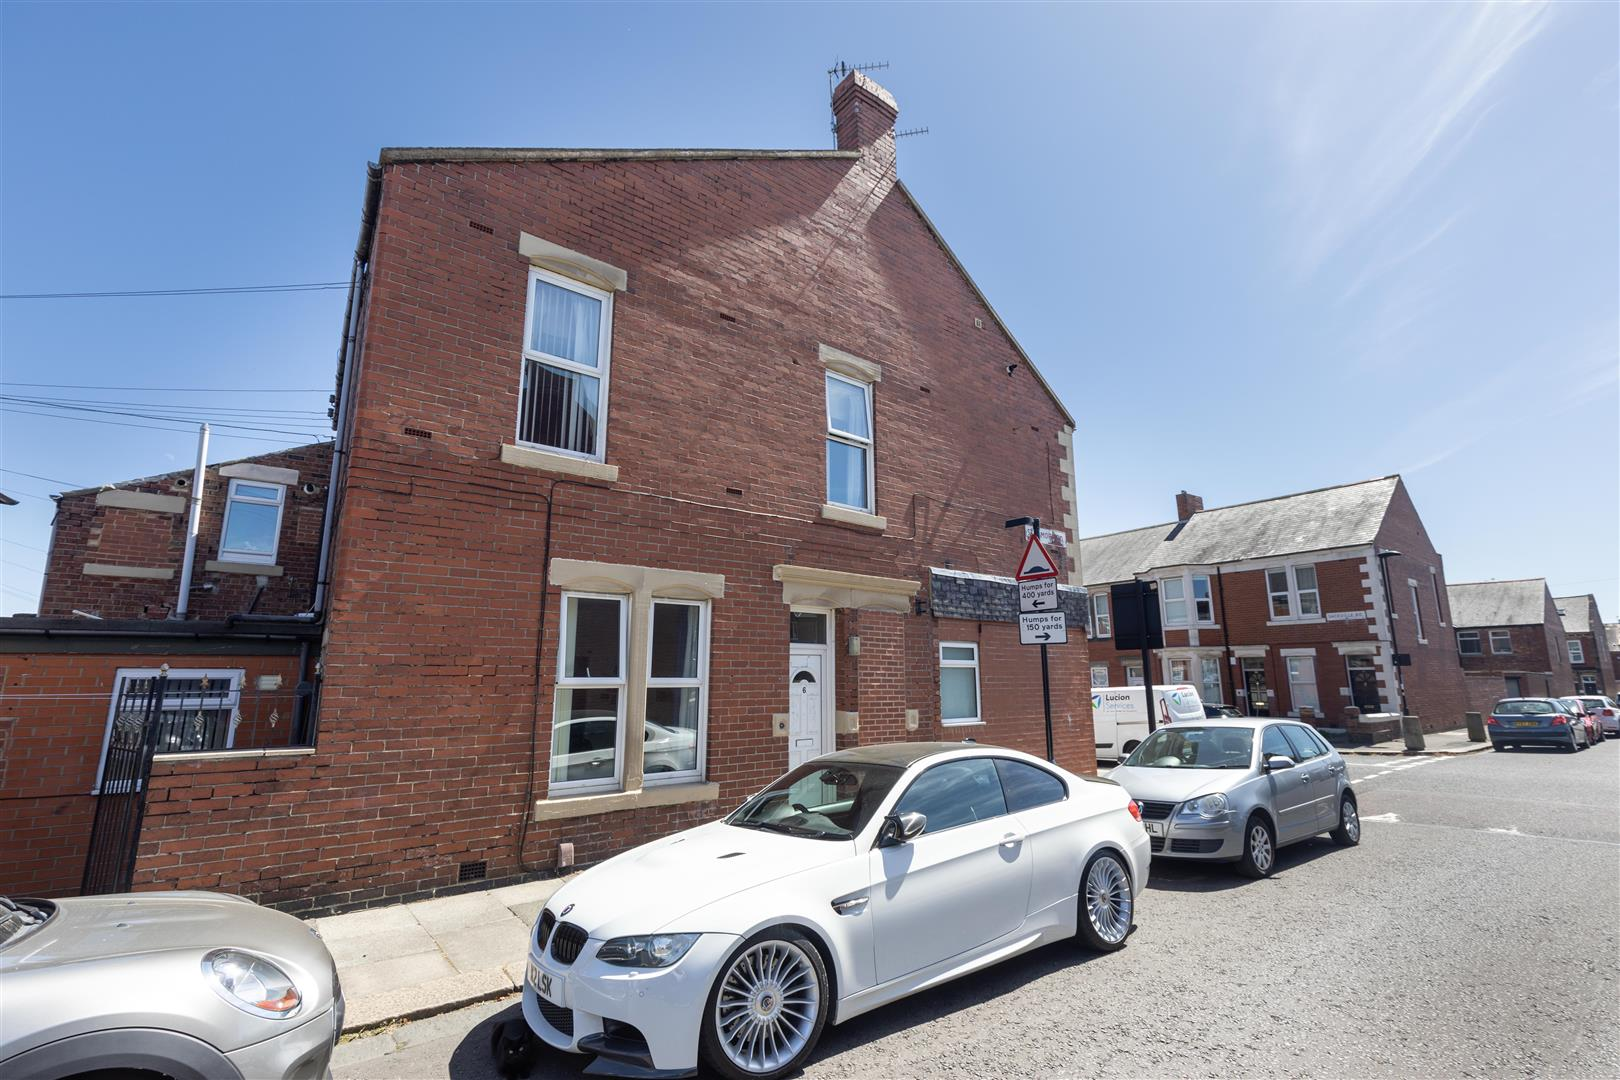 4 bed flat to rent in Newcastle Upon Tyne, NE6 5SX, NE6